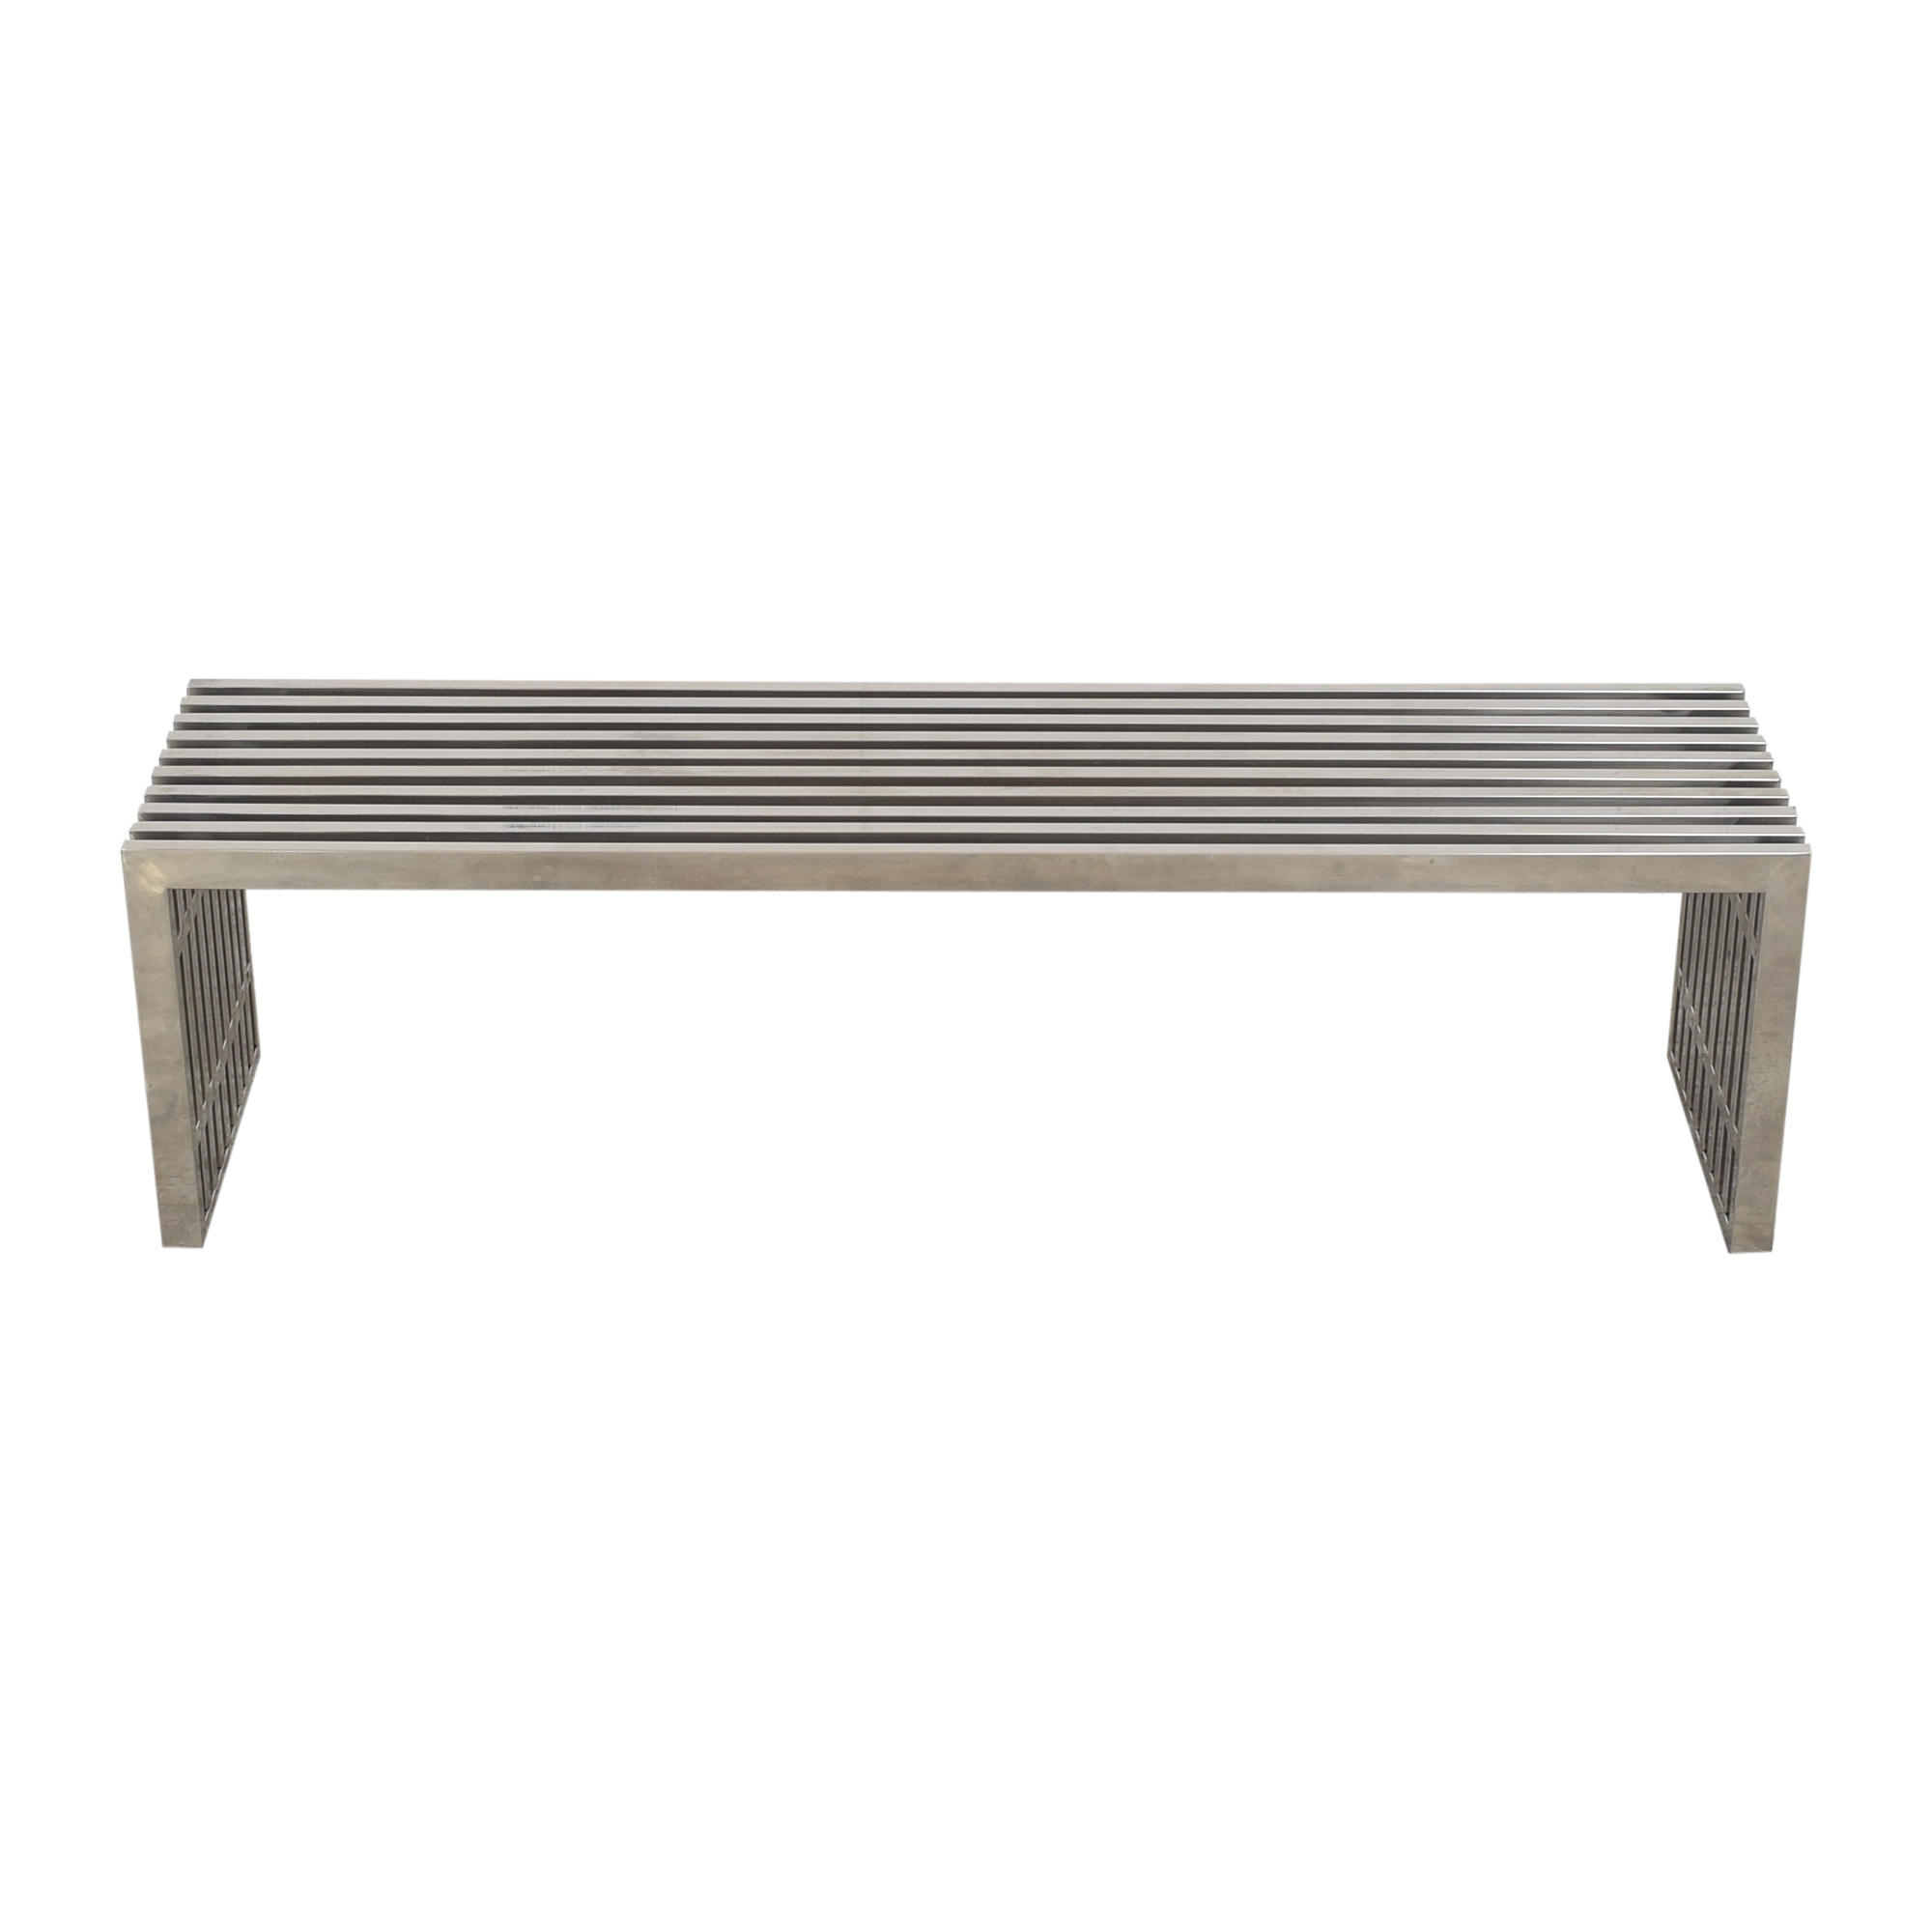 Milo Baughman-Style Slatted Double Bench  / Chairs